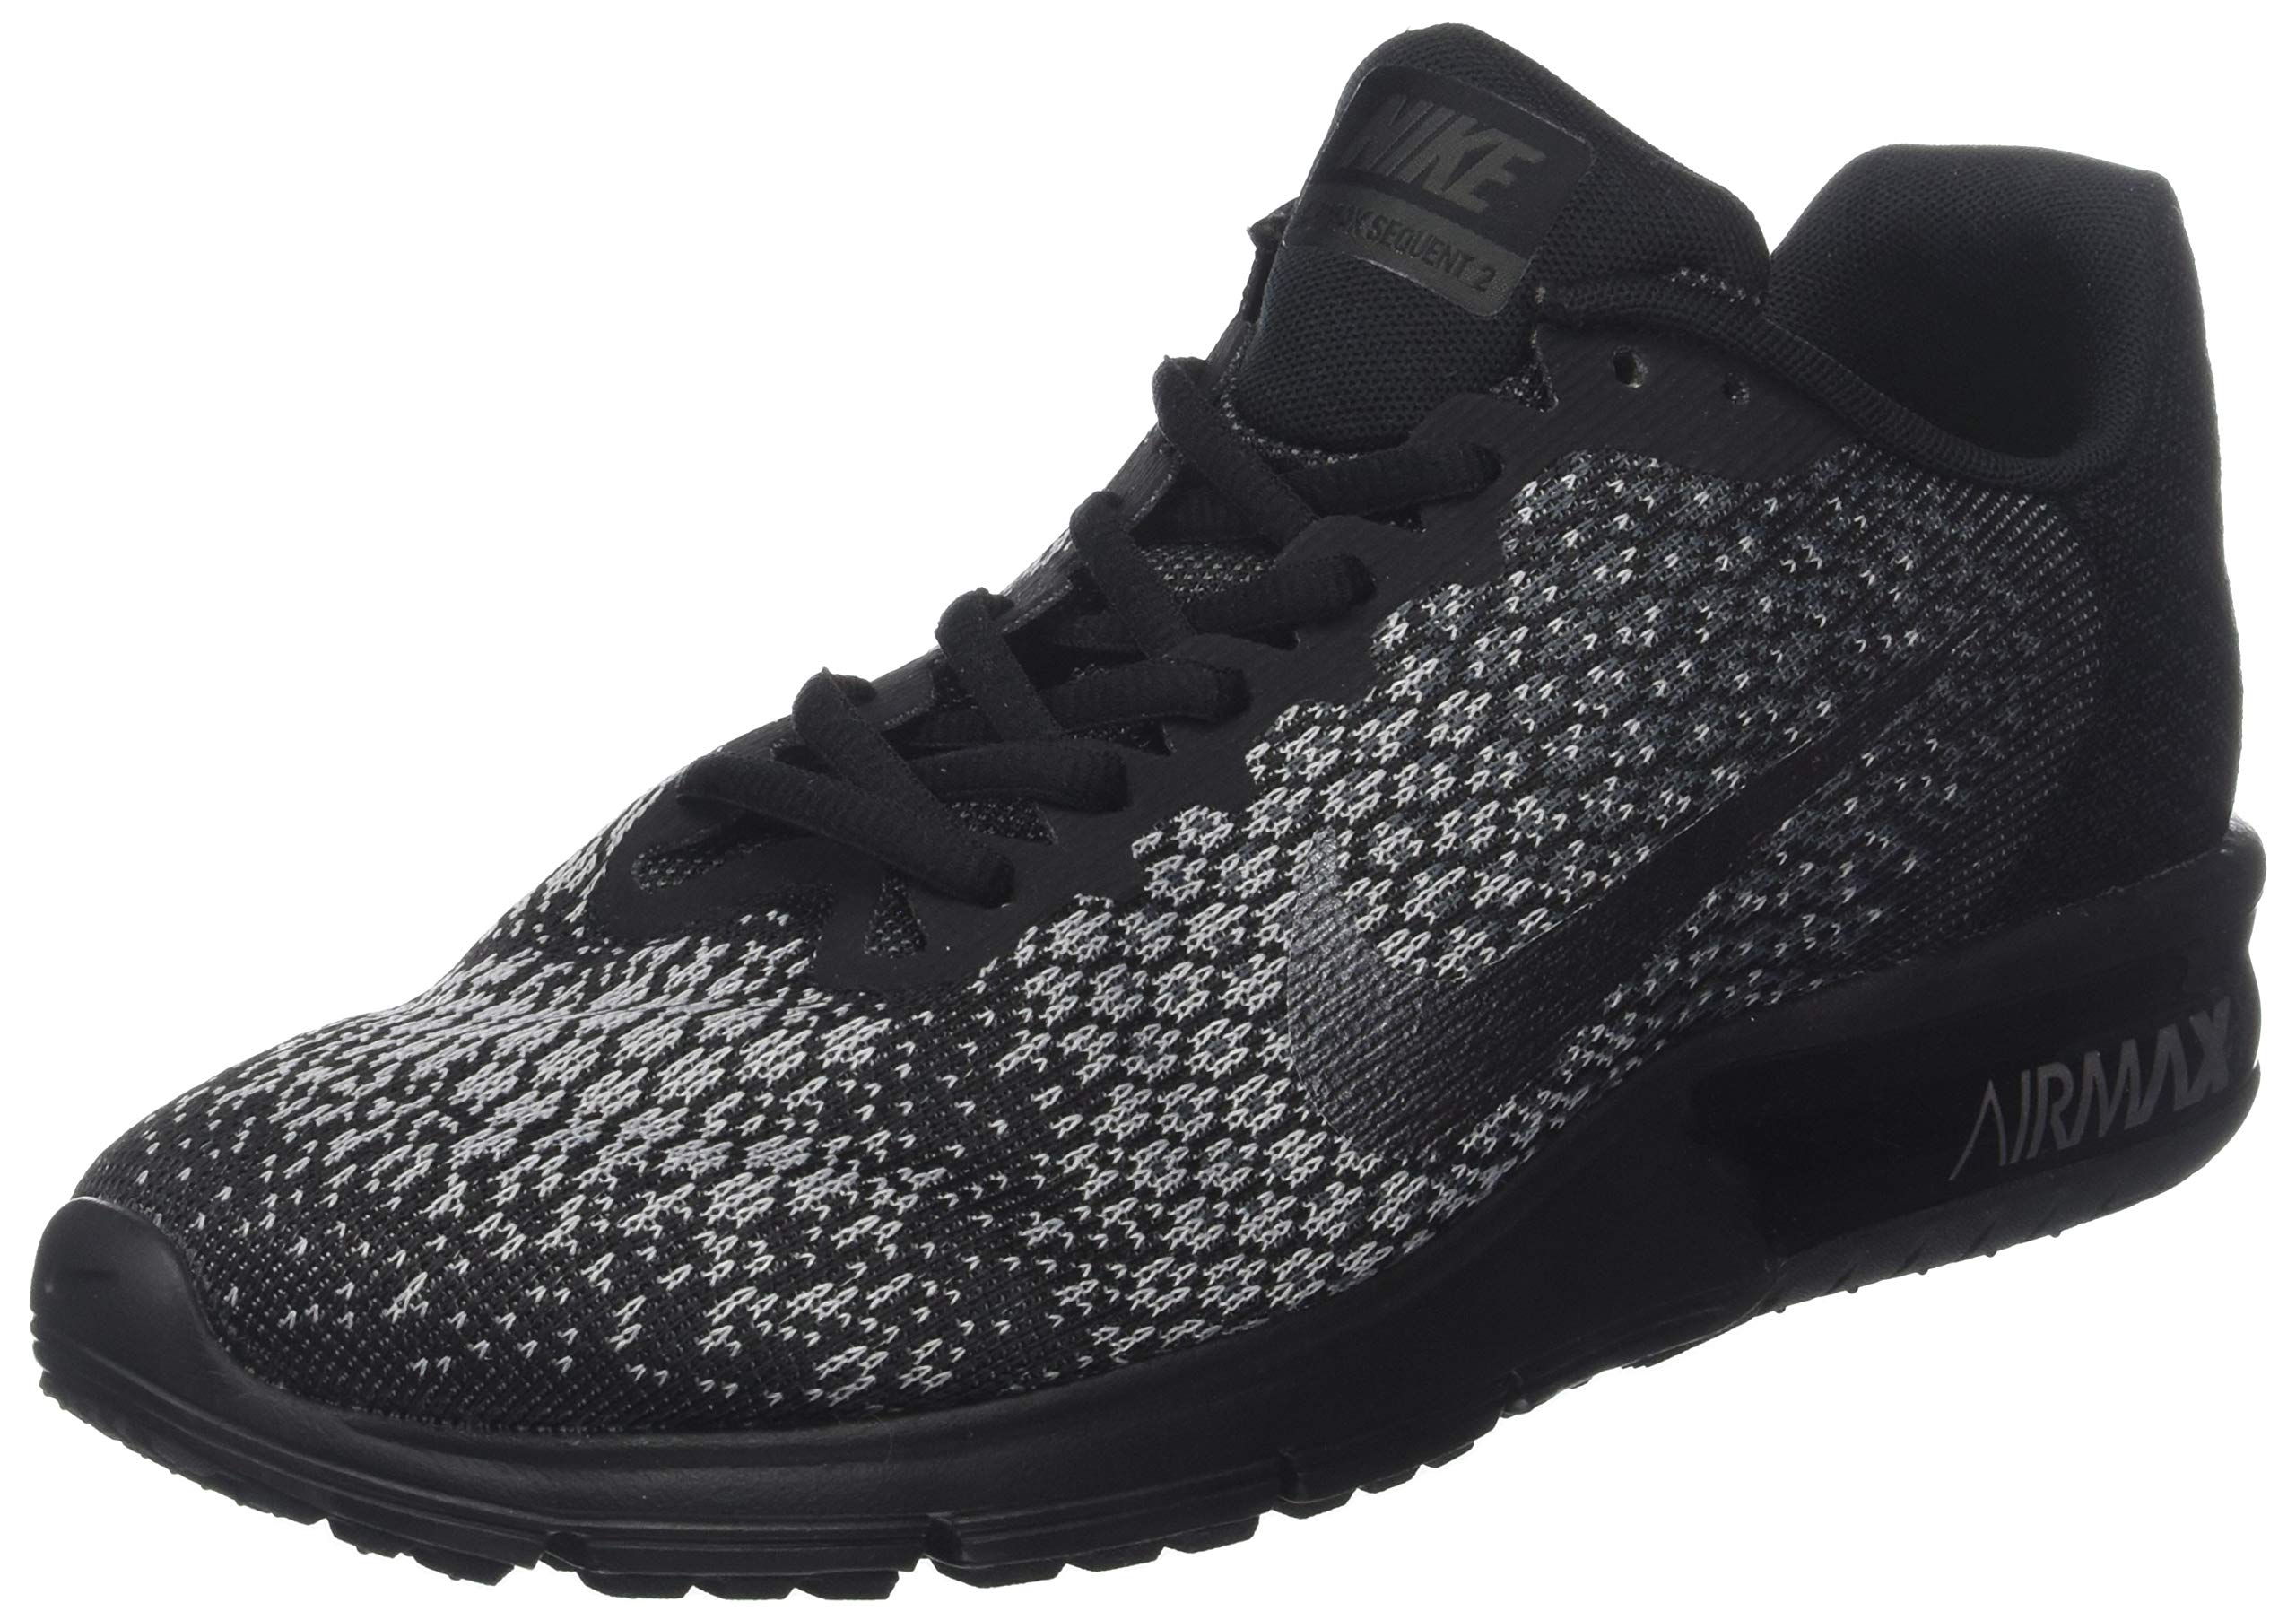 official photos 12113 c991b Nike Air Max Sequent 2 Mens Running Shoes